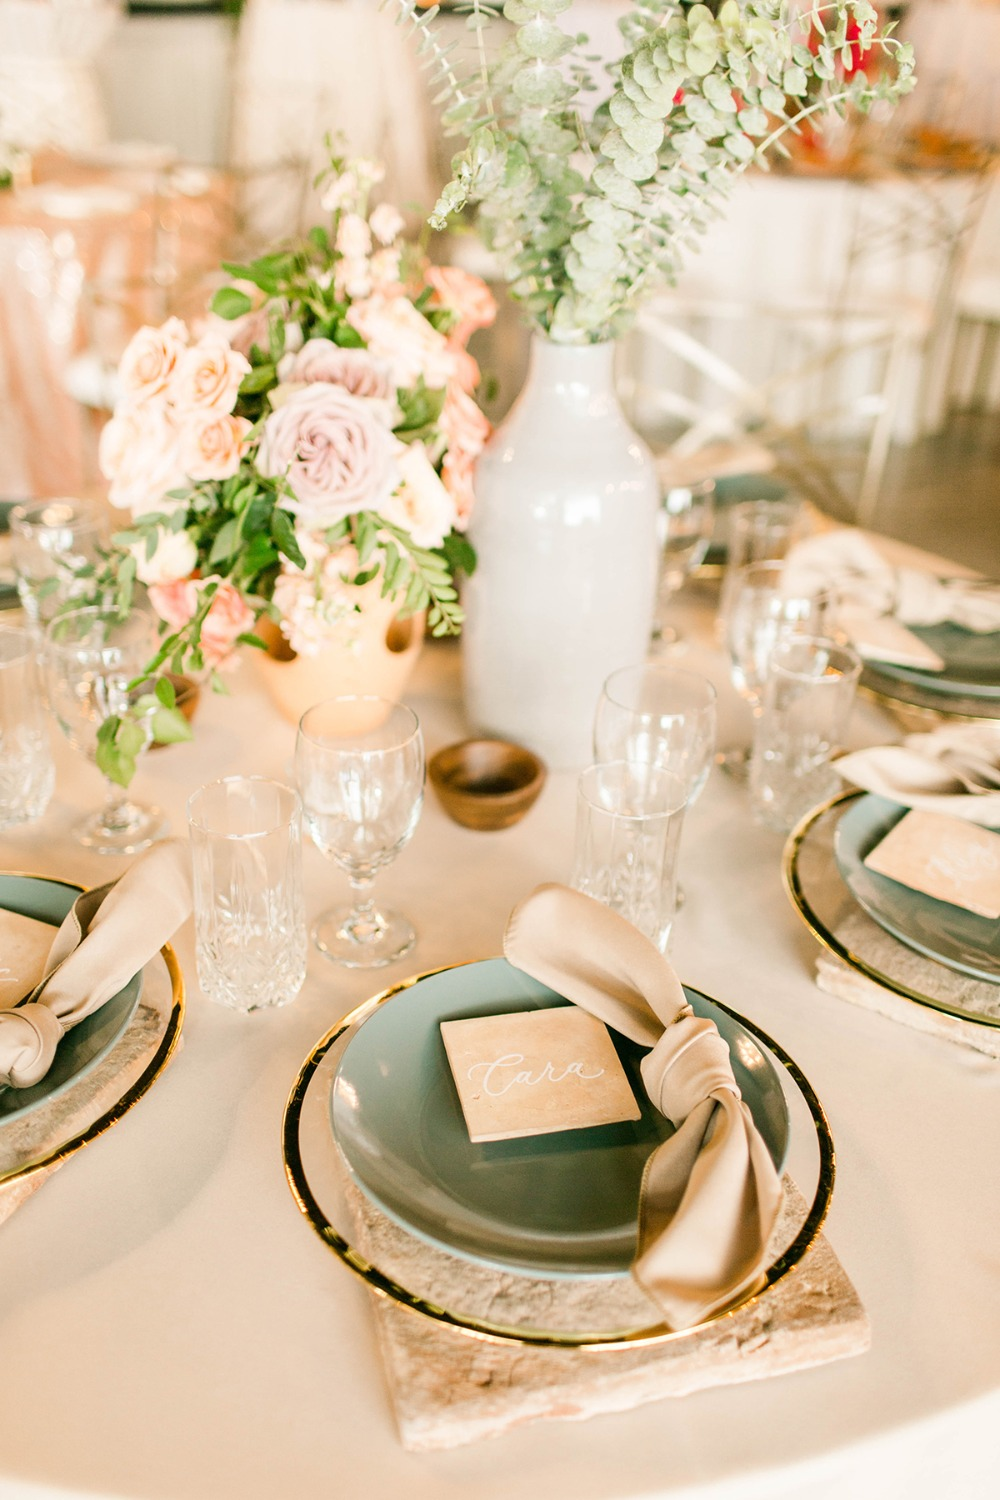 neutral and teal wedding place setting with tile chargers and place cards